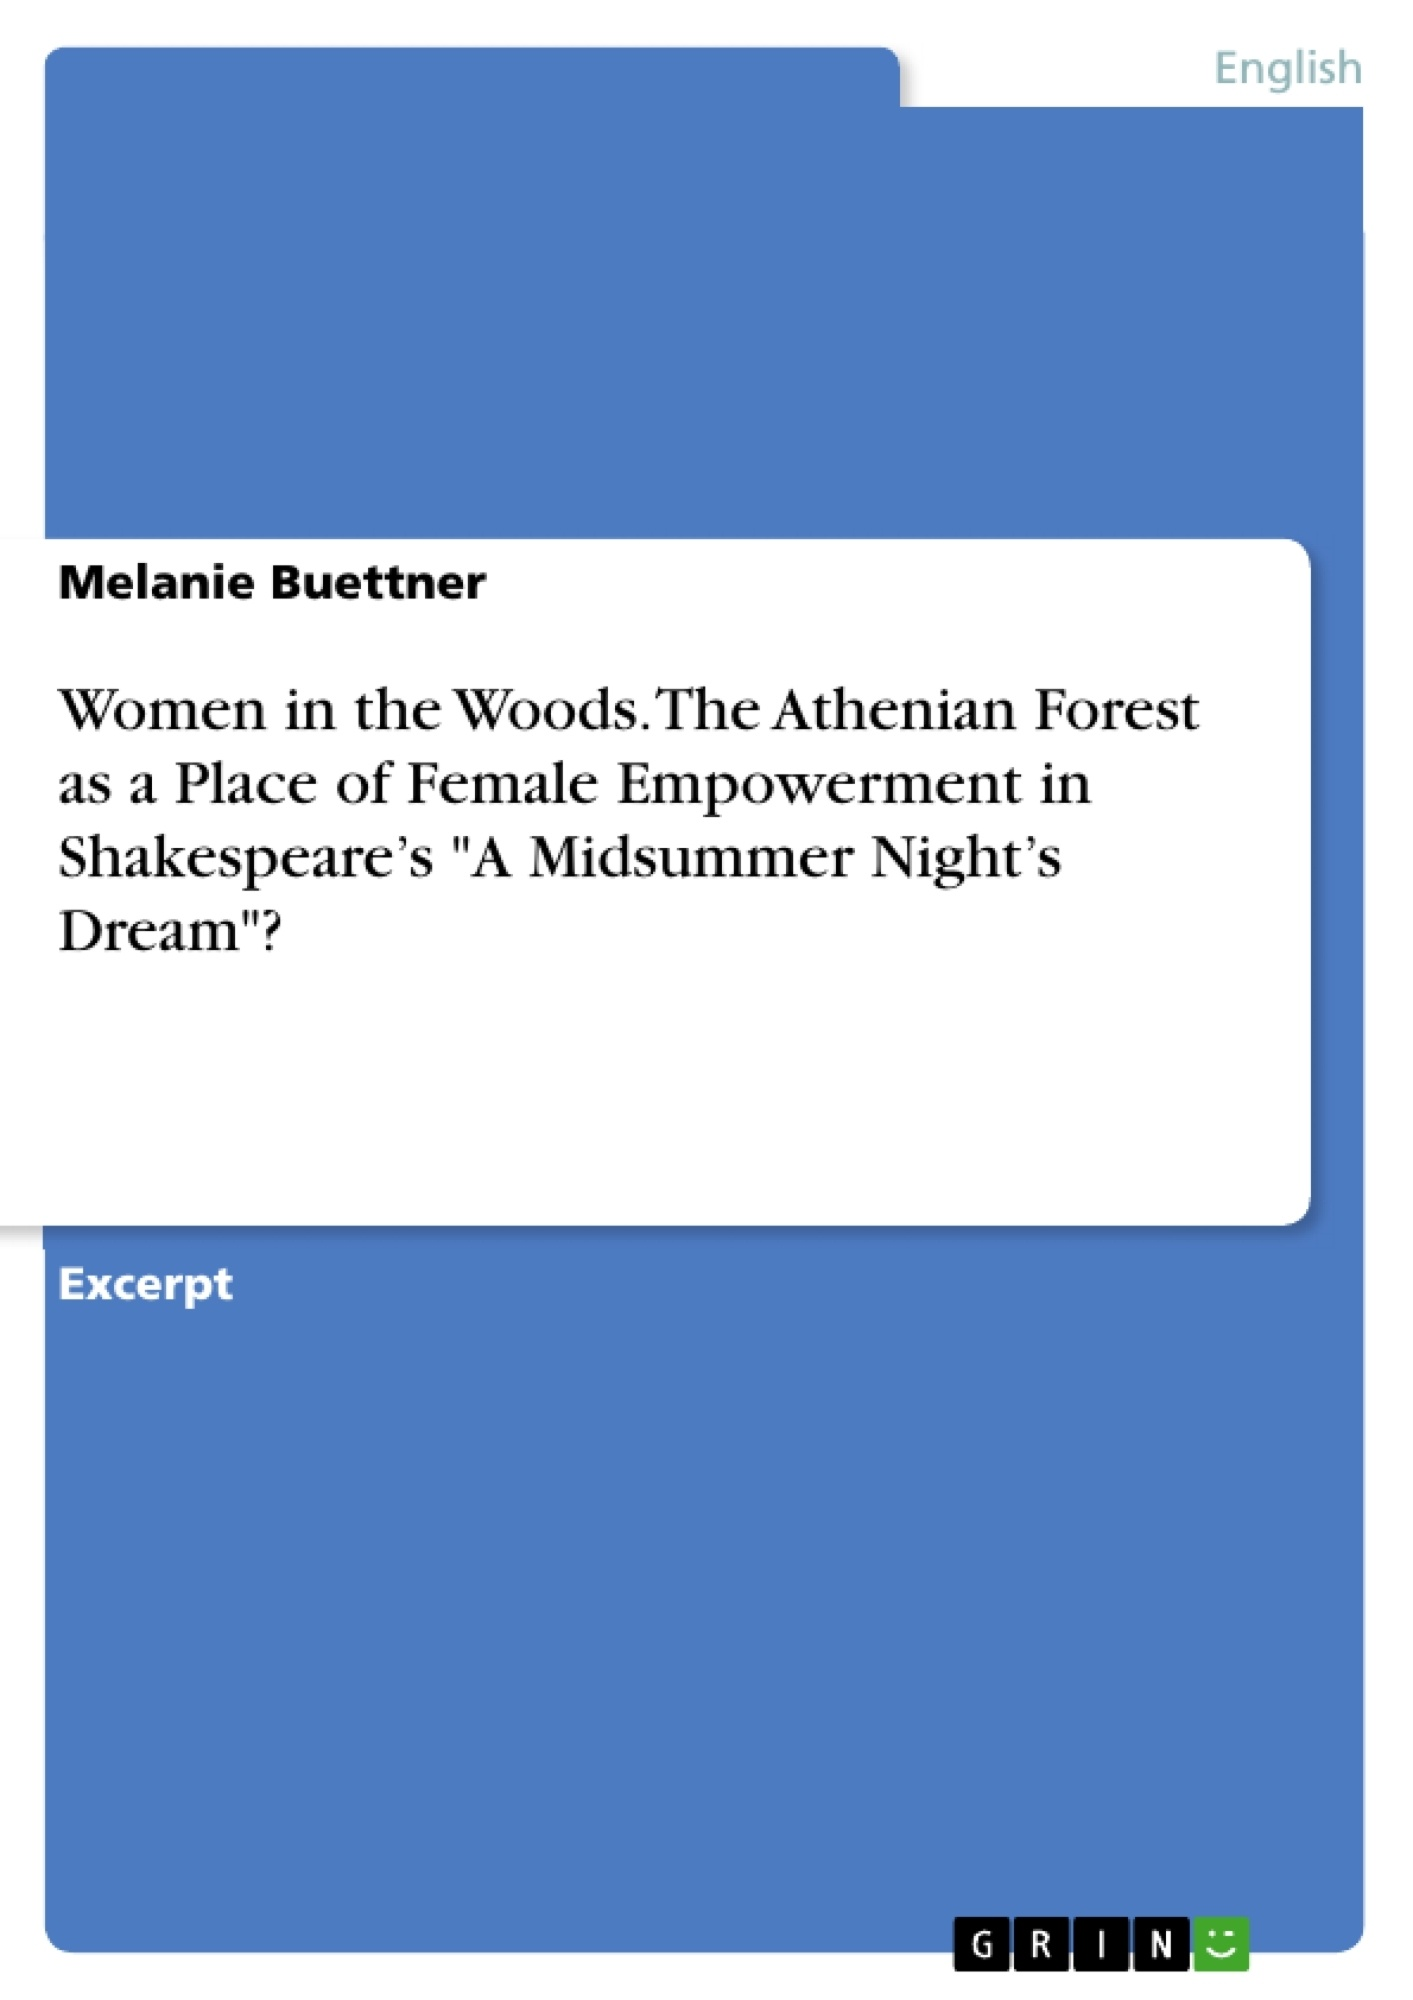 """Title: Women in the Woods. The Athenian Forest as a Place of Female Empowerment in Shakespeare's """"A Midsummer Night's Dream""""?"""